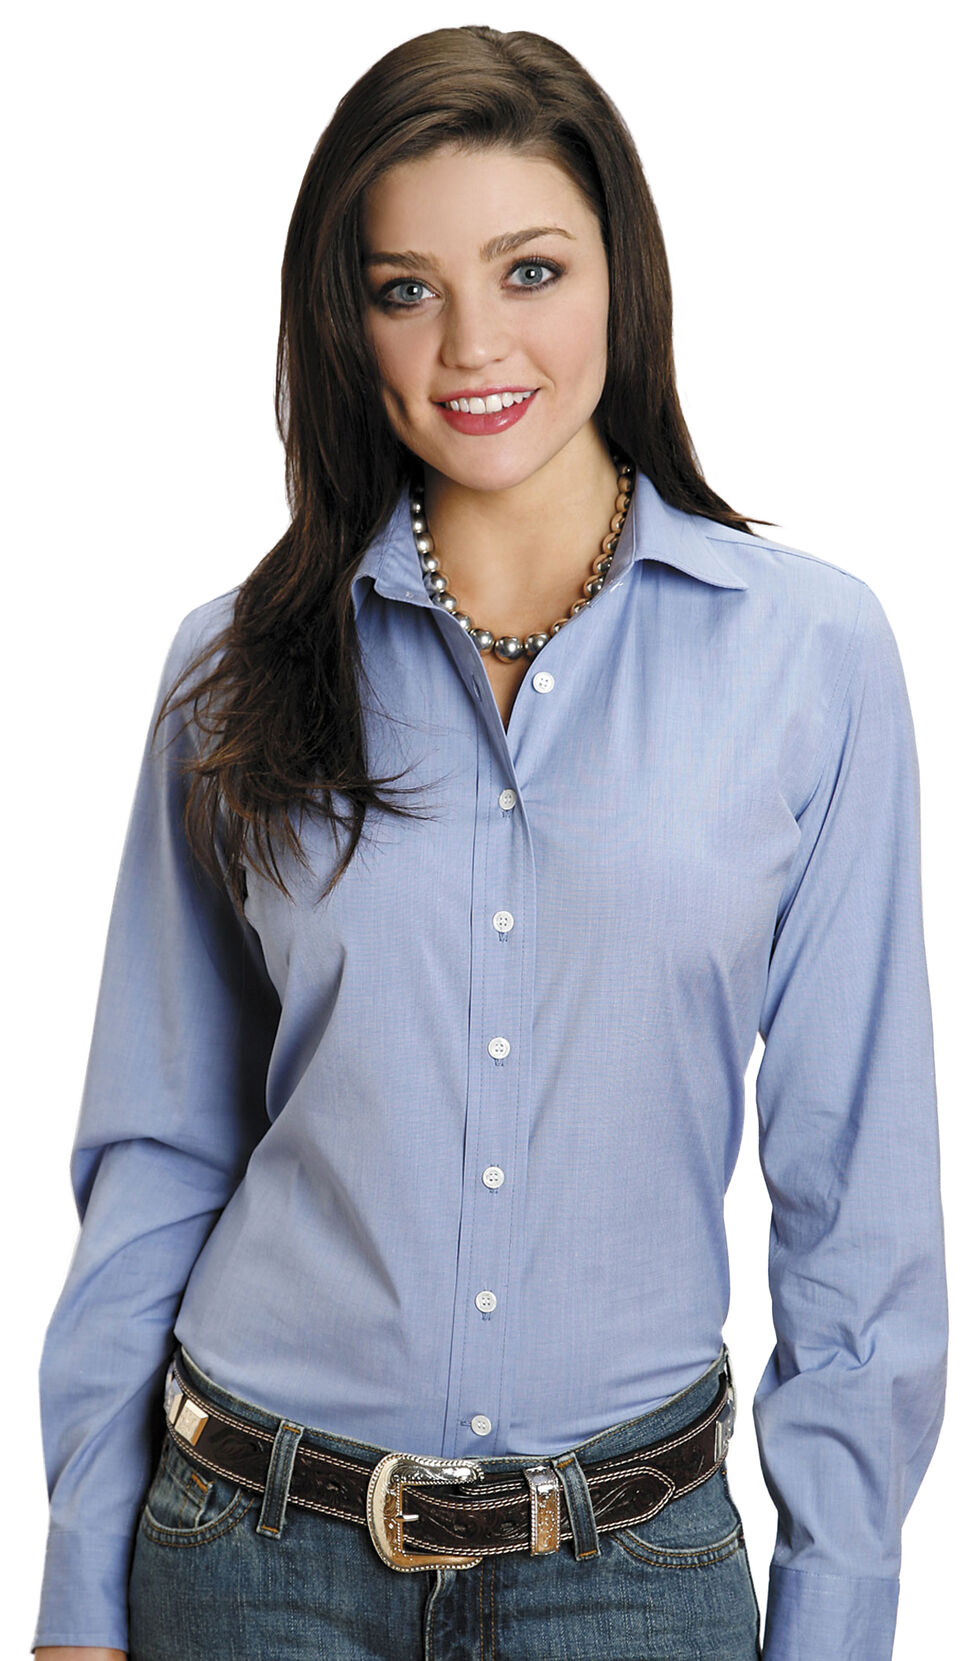 Stetson Women's End on End Solid Button-Down Shirt, Blue, hi-res